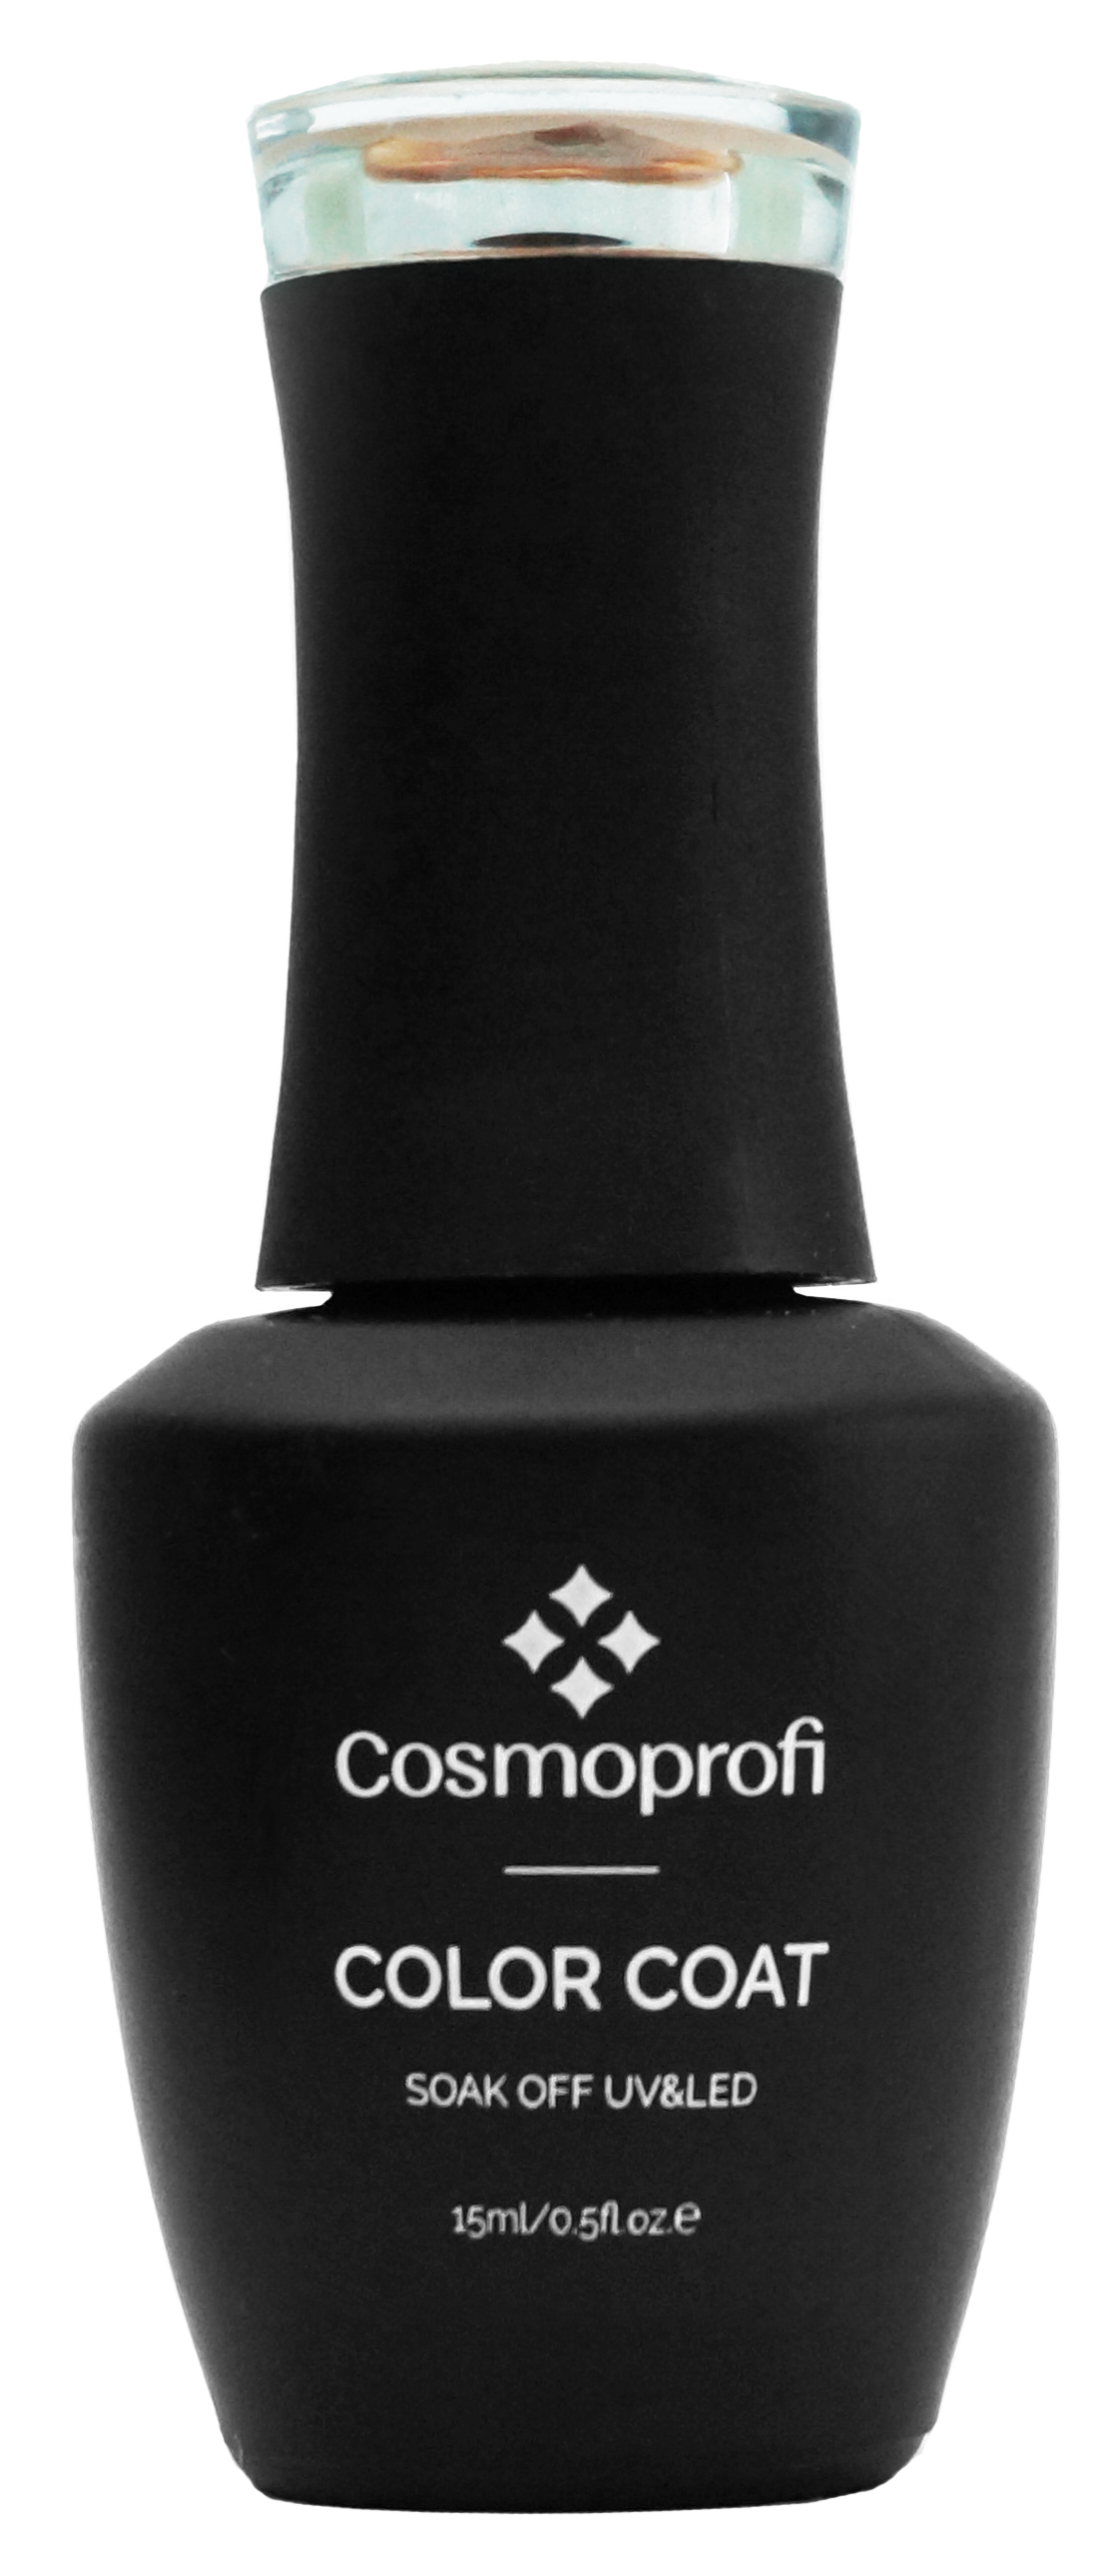 Гель-лак Cosmoprofi, Color coat № 267, 15 мл